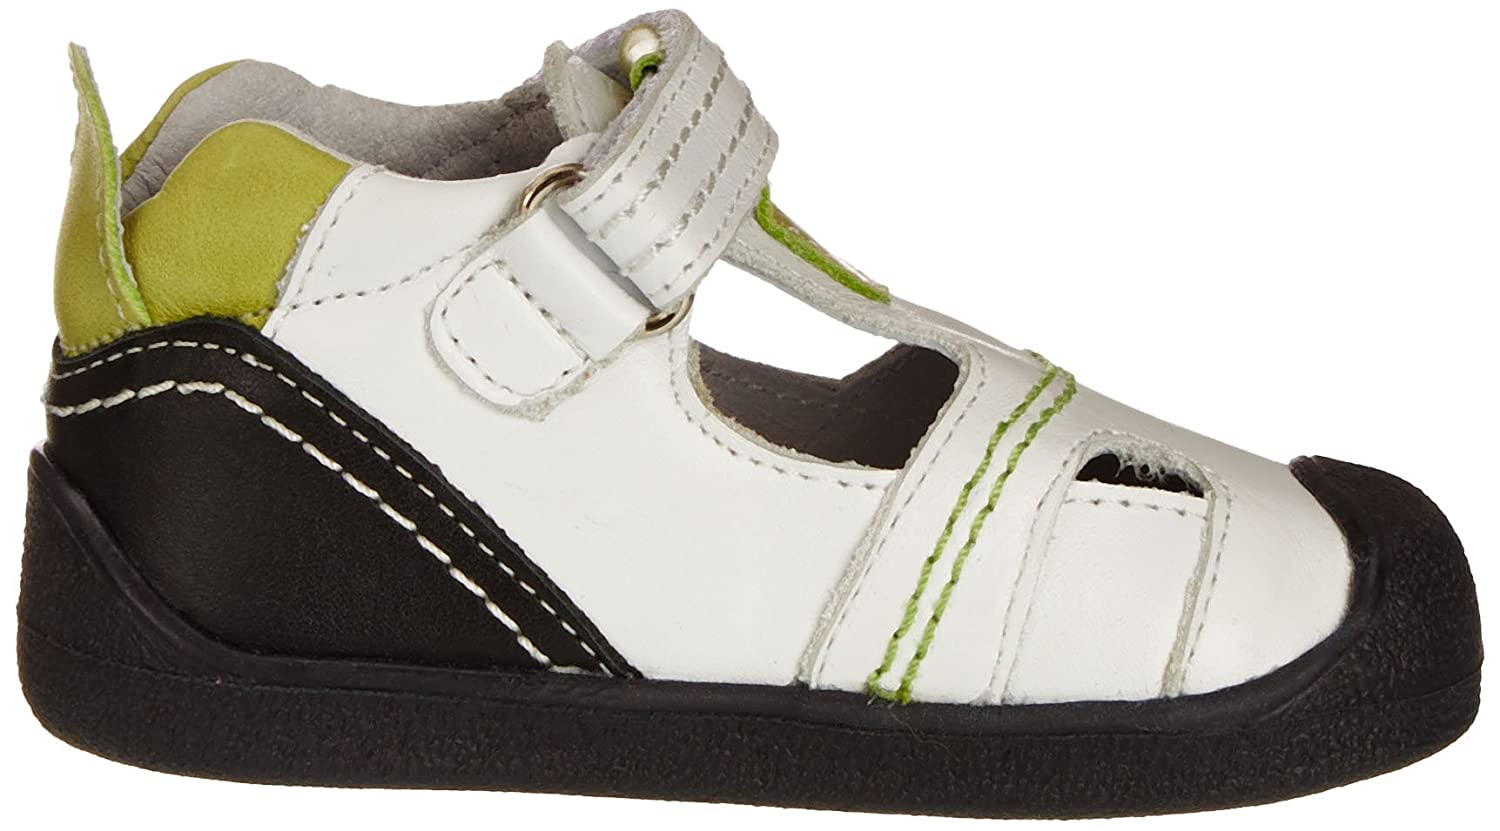 Cuquito Boys Loafers 90209 BCO Verde 3 UK Child, 19 EU: Amazon.co.uk: Shoes  & Bags